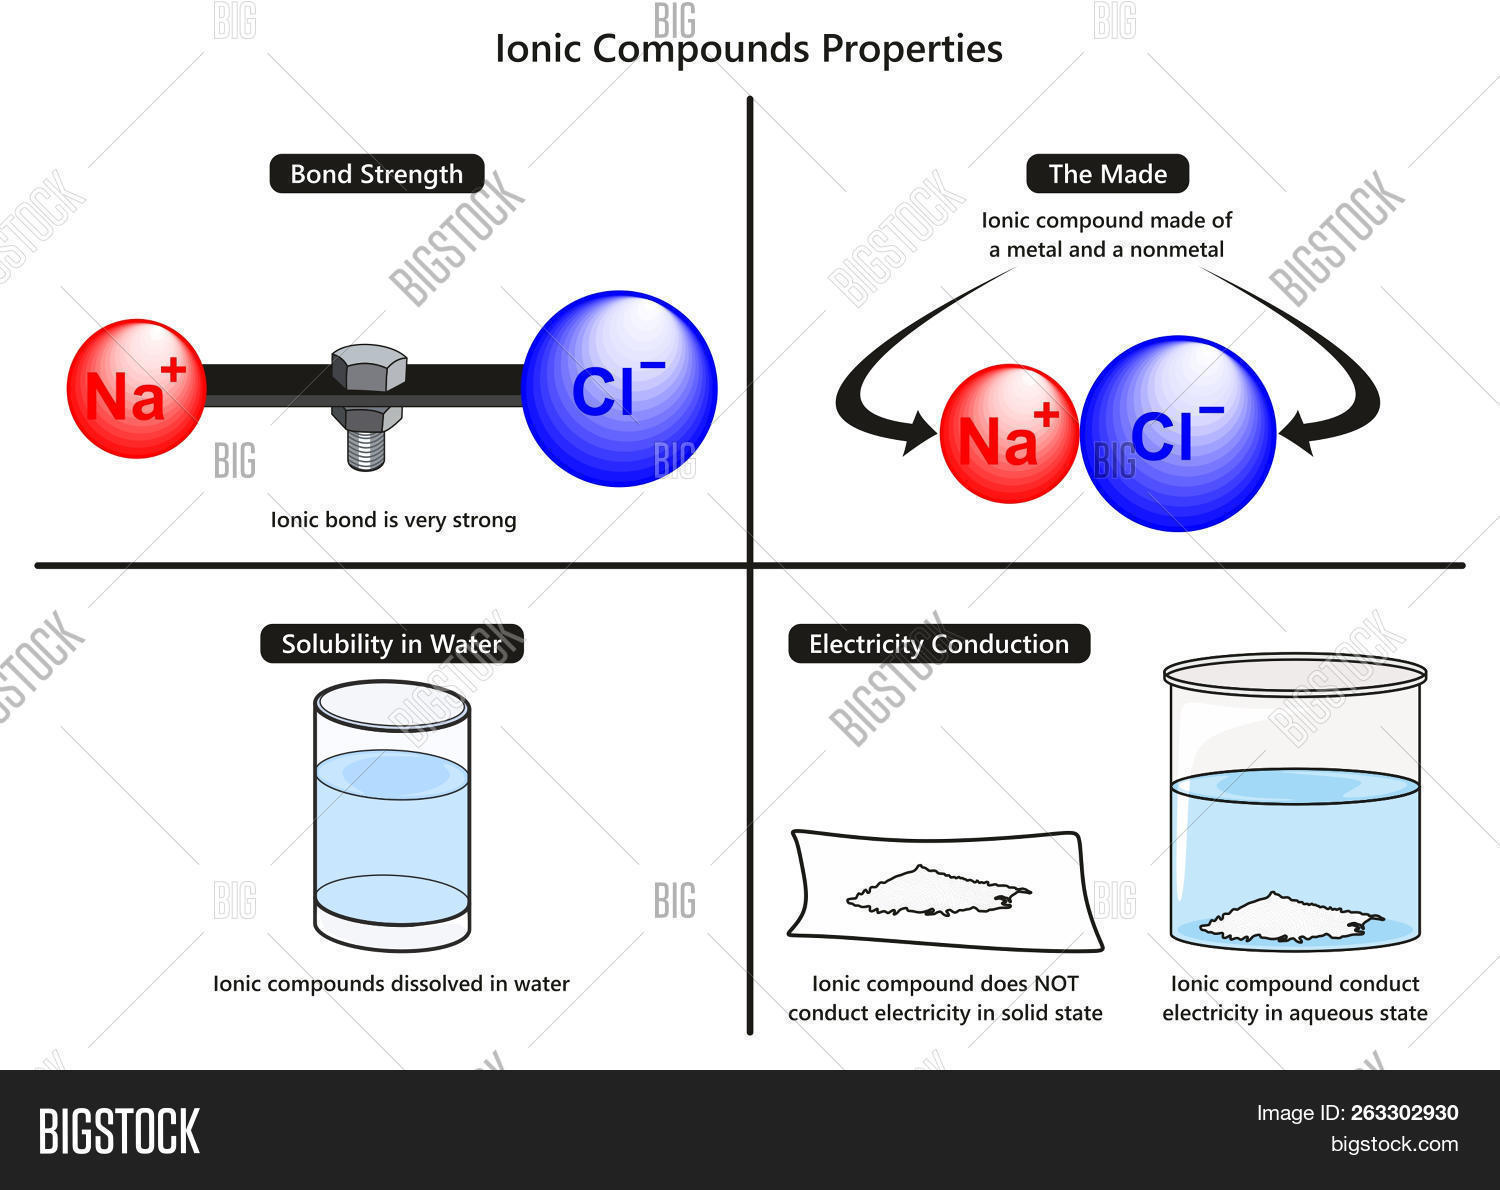 hight resolution of ionic bond properties image photo free trial bigstock ionic bond diagram water